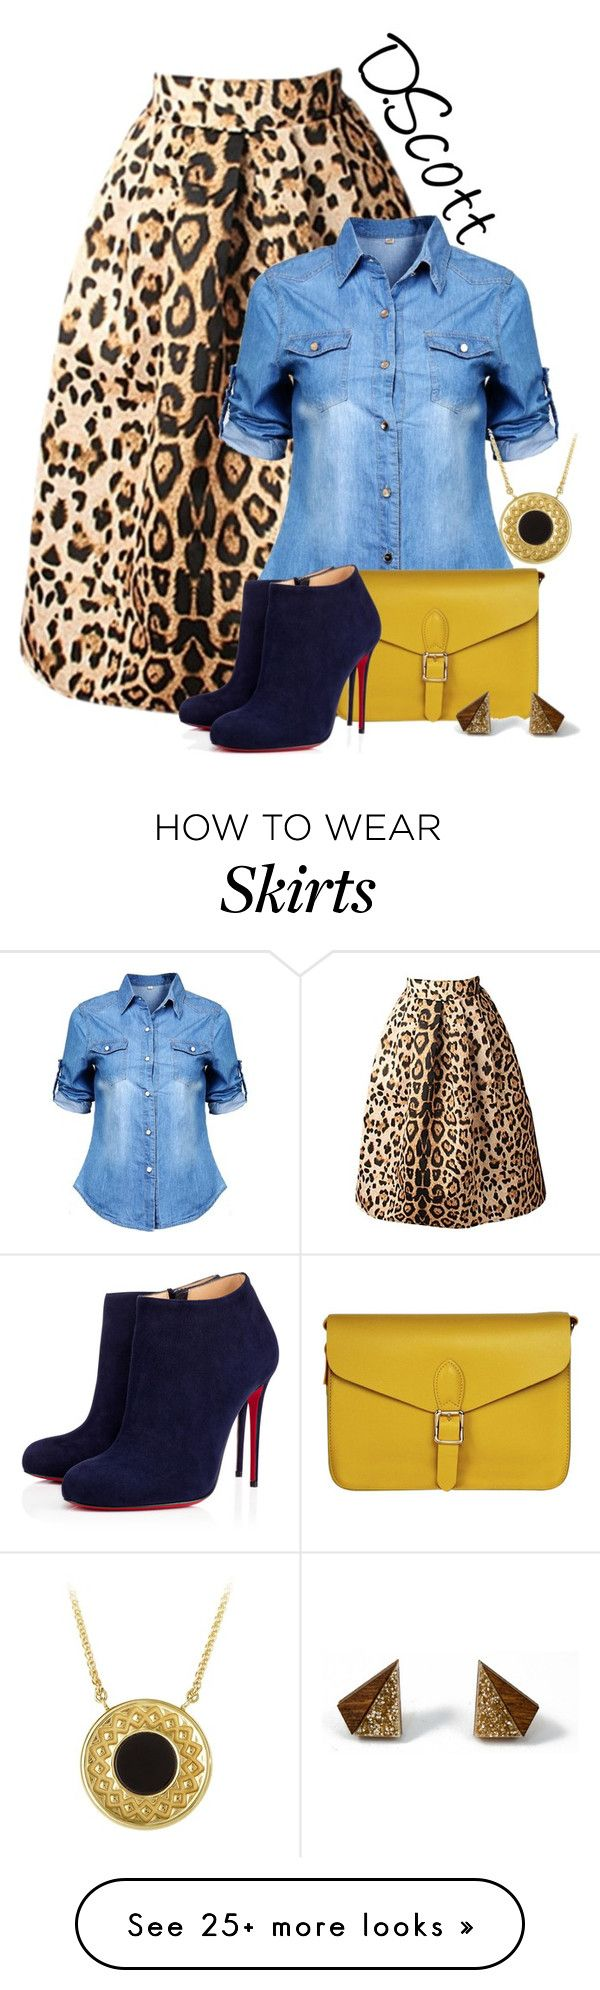 """Style Me: Skirt"" by dawn-scott on Polyvore featuring Angela & Roi, Christian Louboutin, Wolf & Moon and Carrera y Carrera"